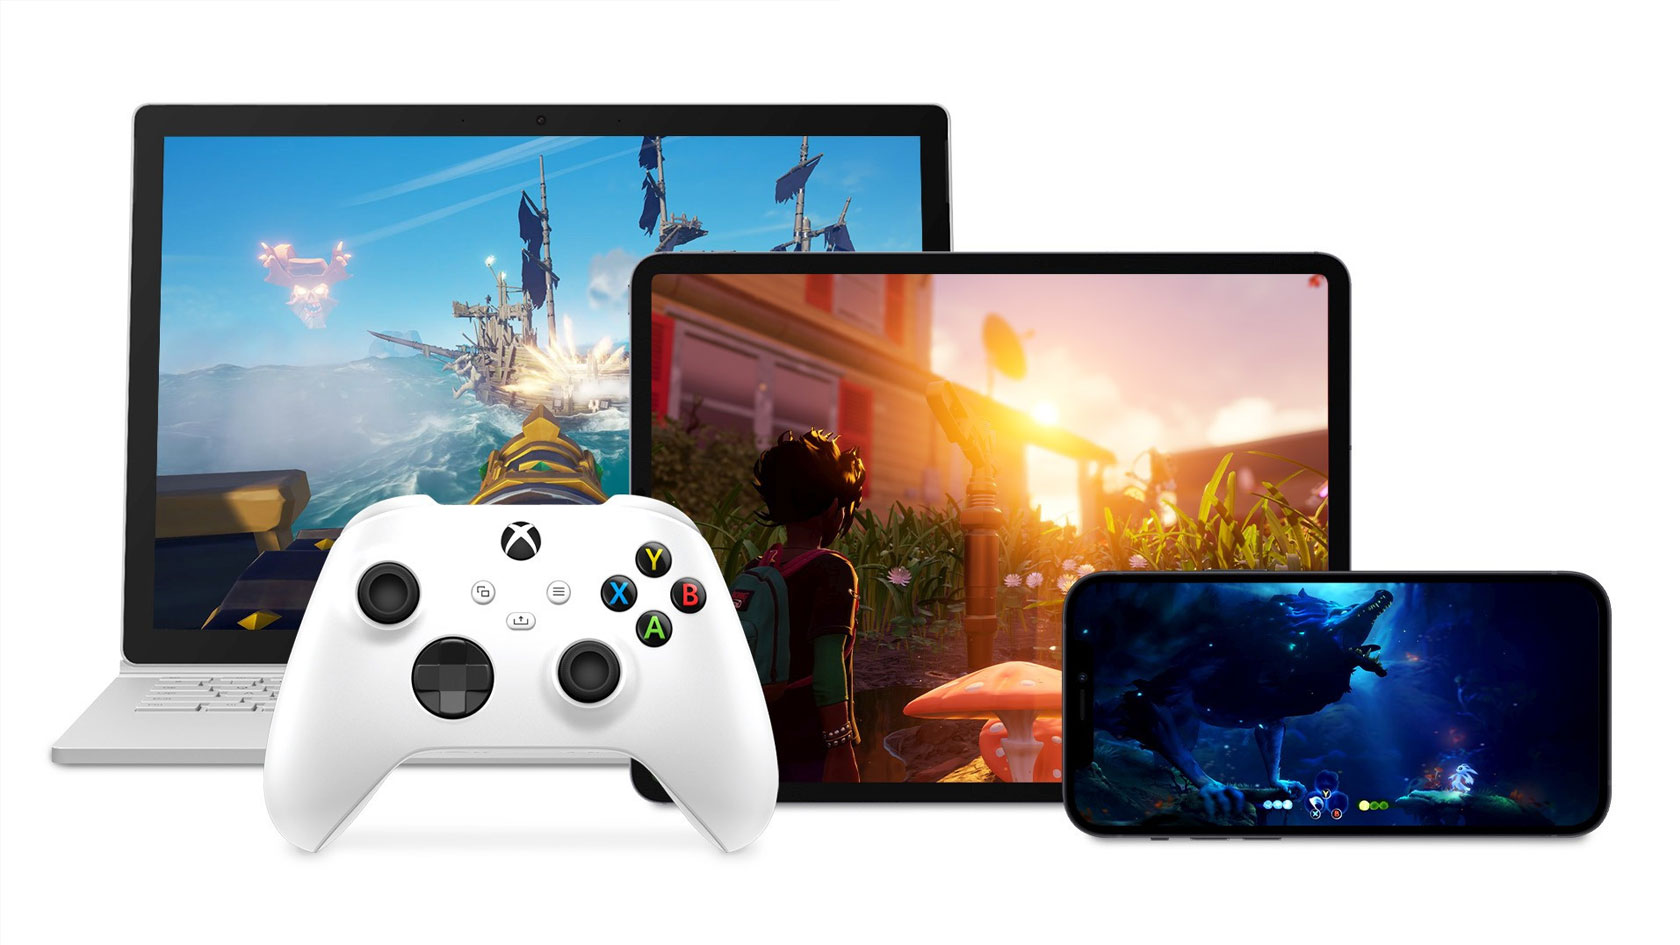 Xbox Controller, iPhone, iPad, and Surface